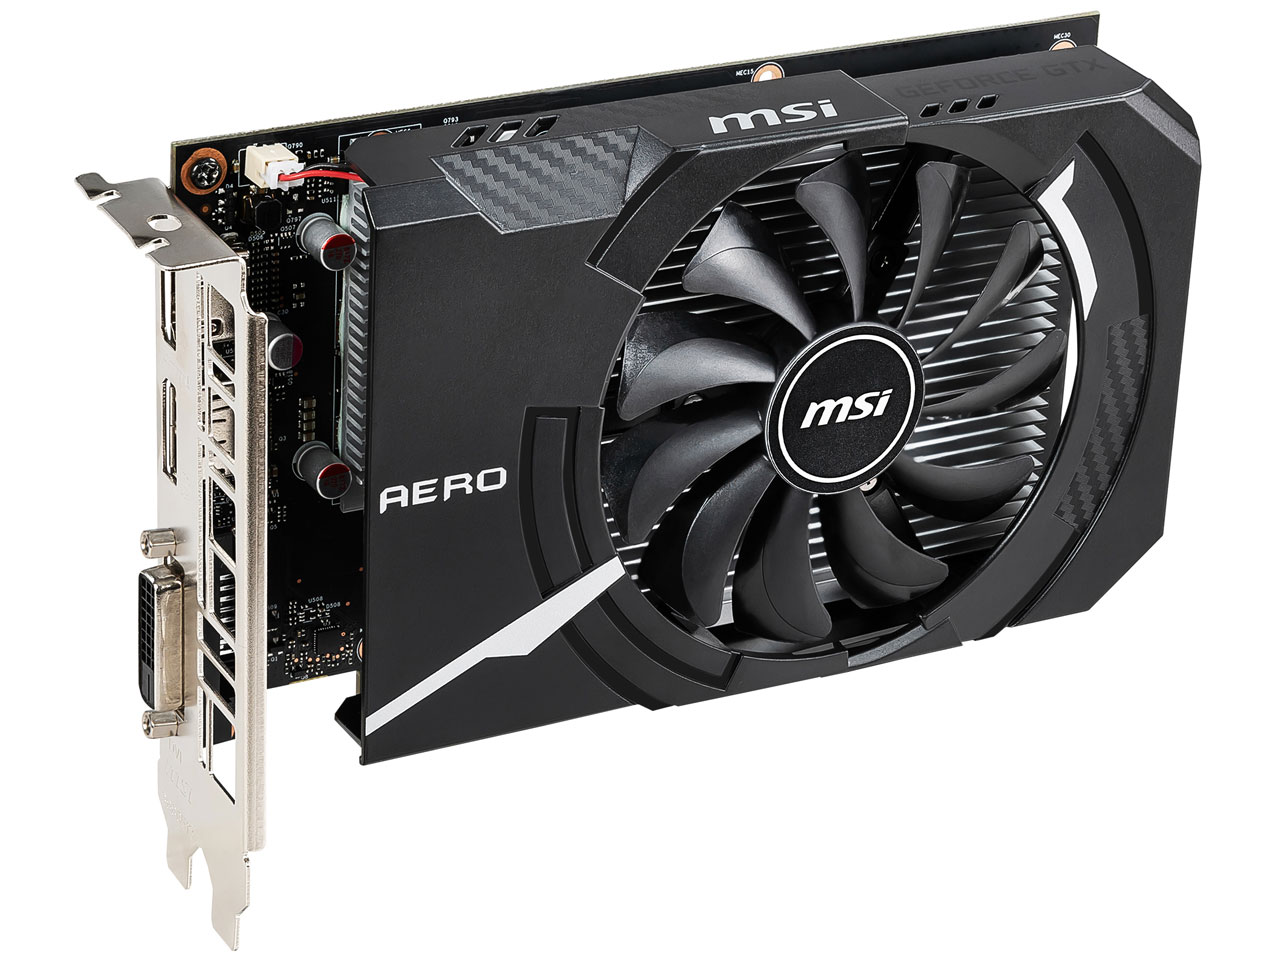 『本体4』 GeForce GTX 1650 AERO ITX 4G OC [PCIExp 4GB] の製品画像